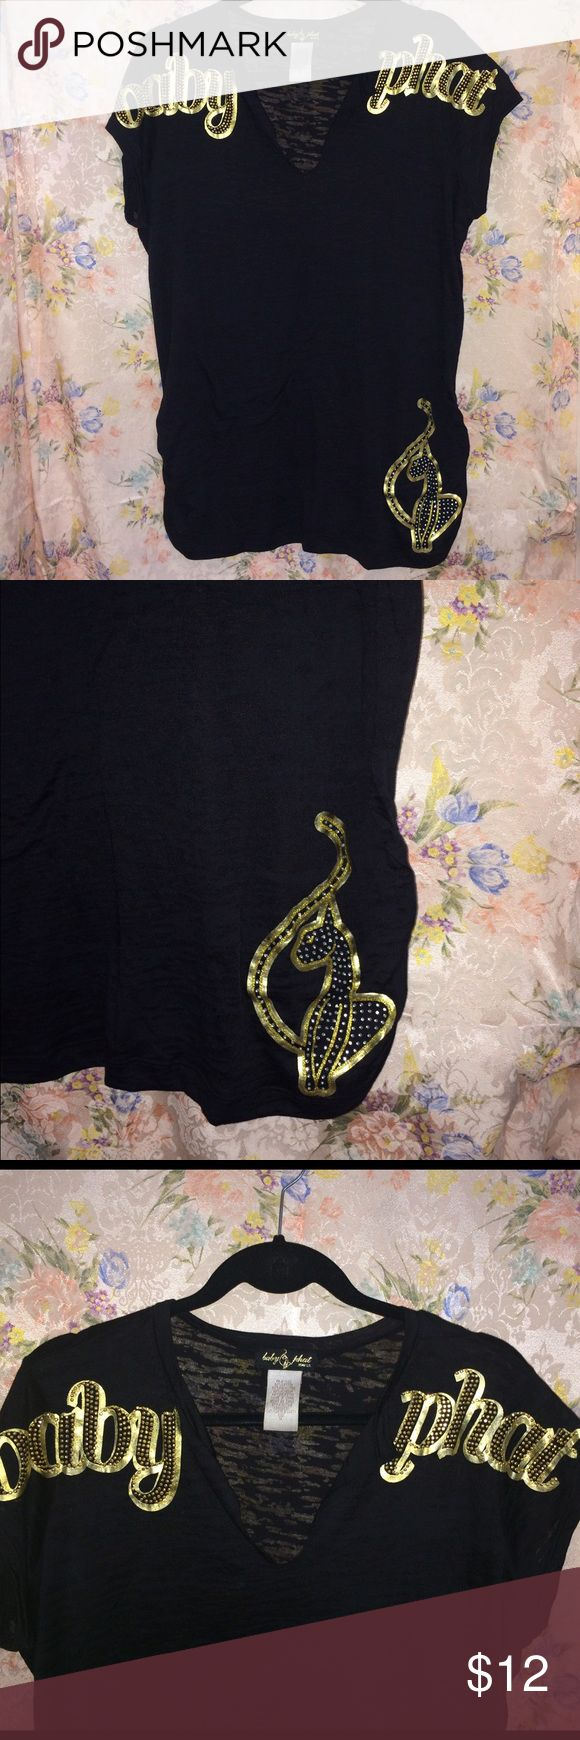 Baby phat black T shirt with gold design. Baby phat black T shirt with gold design. Worn once. Size 1X. Baby Phat Tops Tees - Short Sleeve